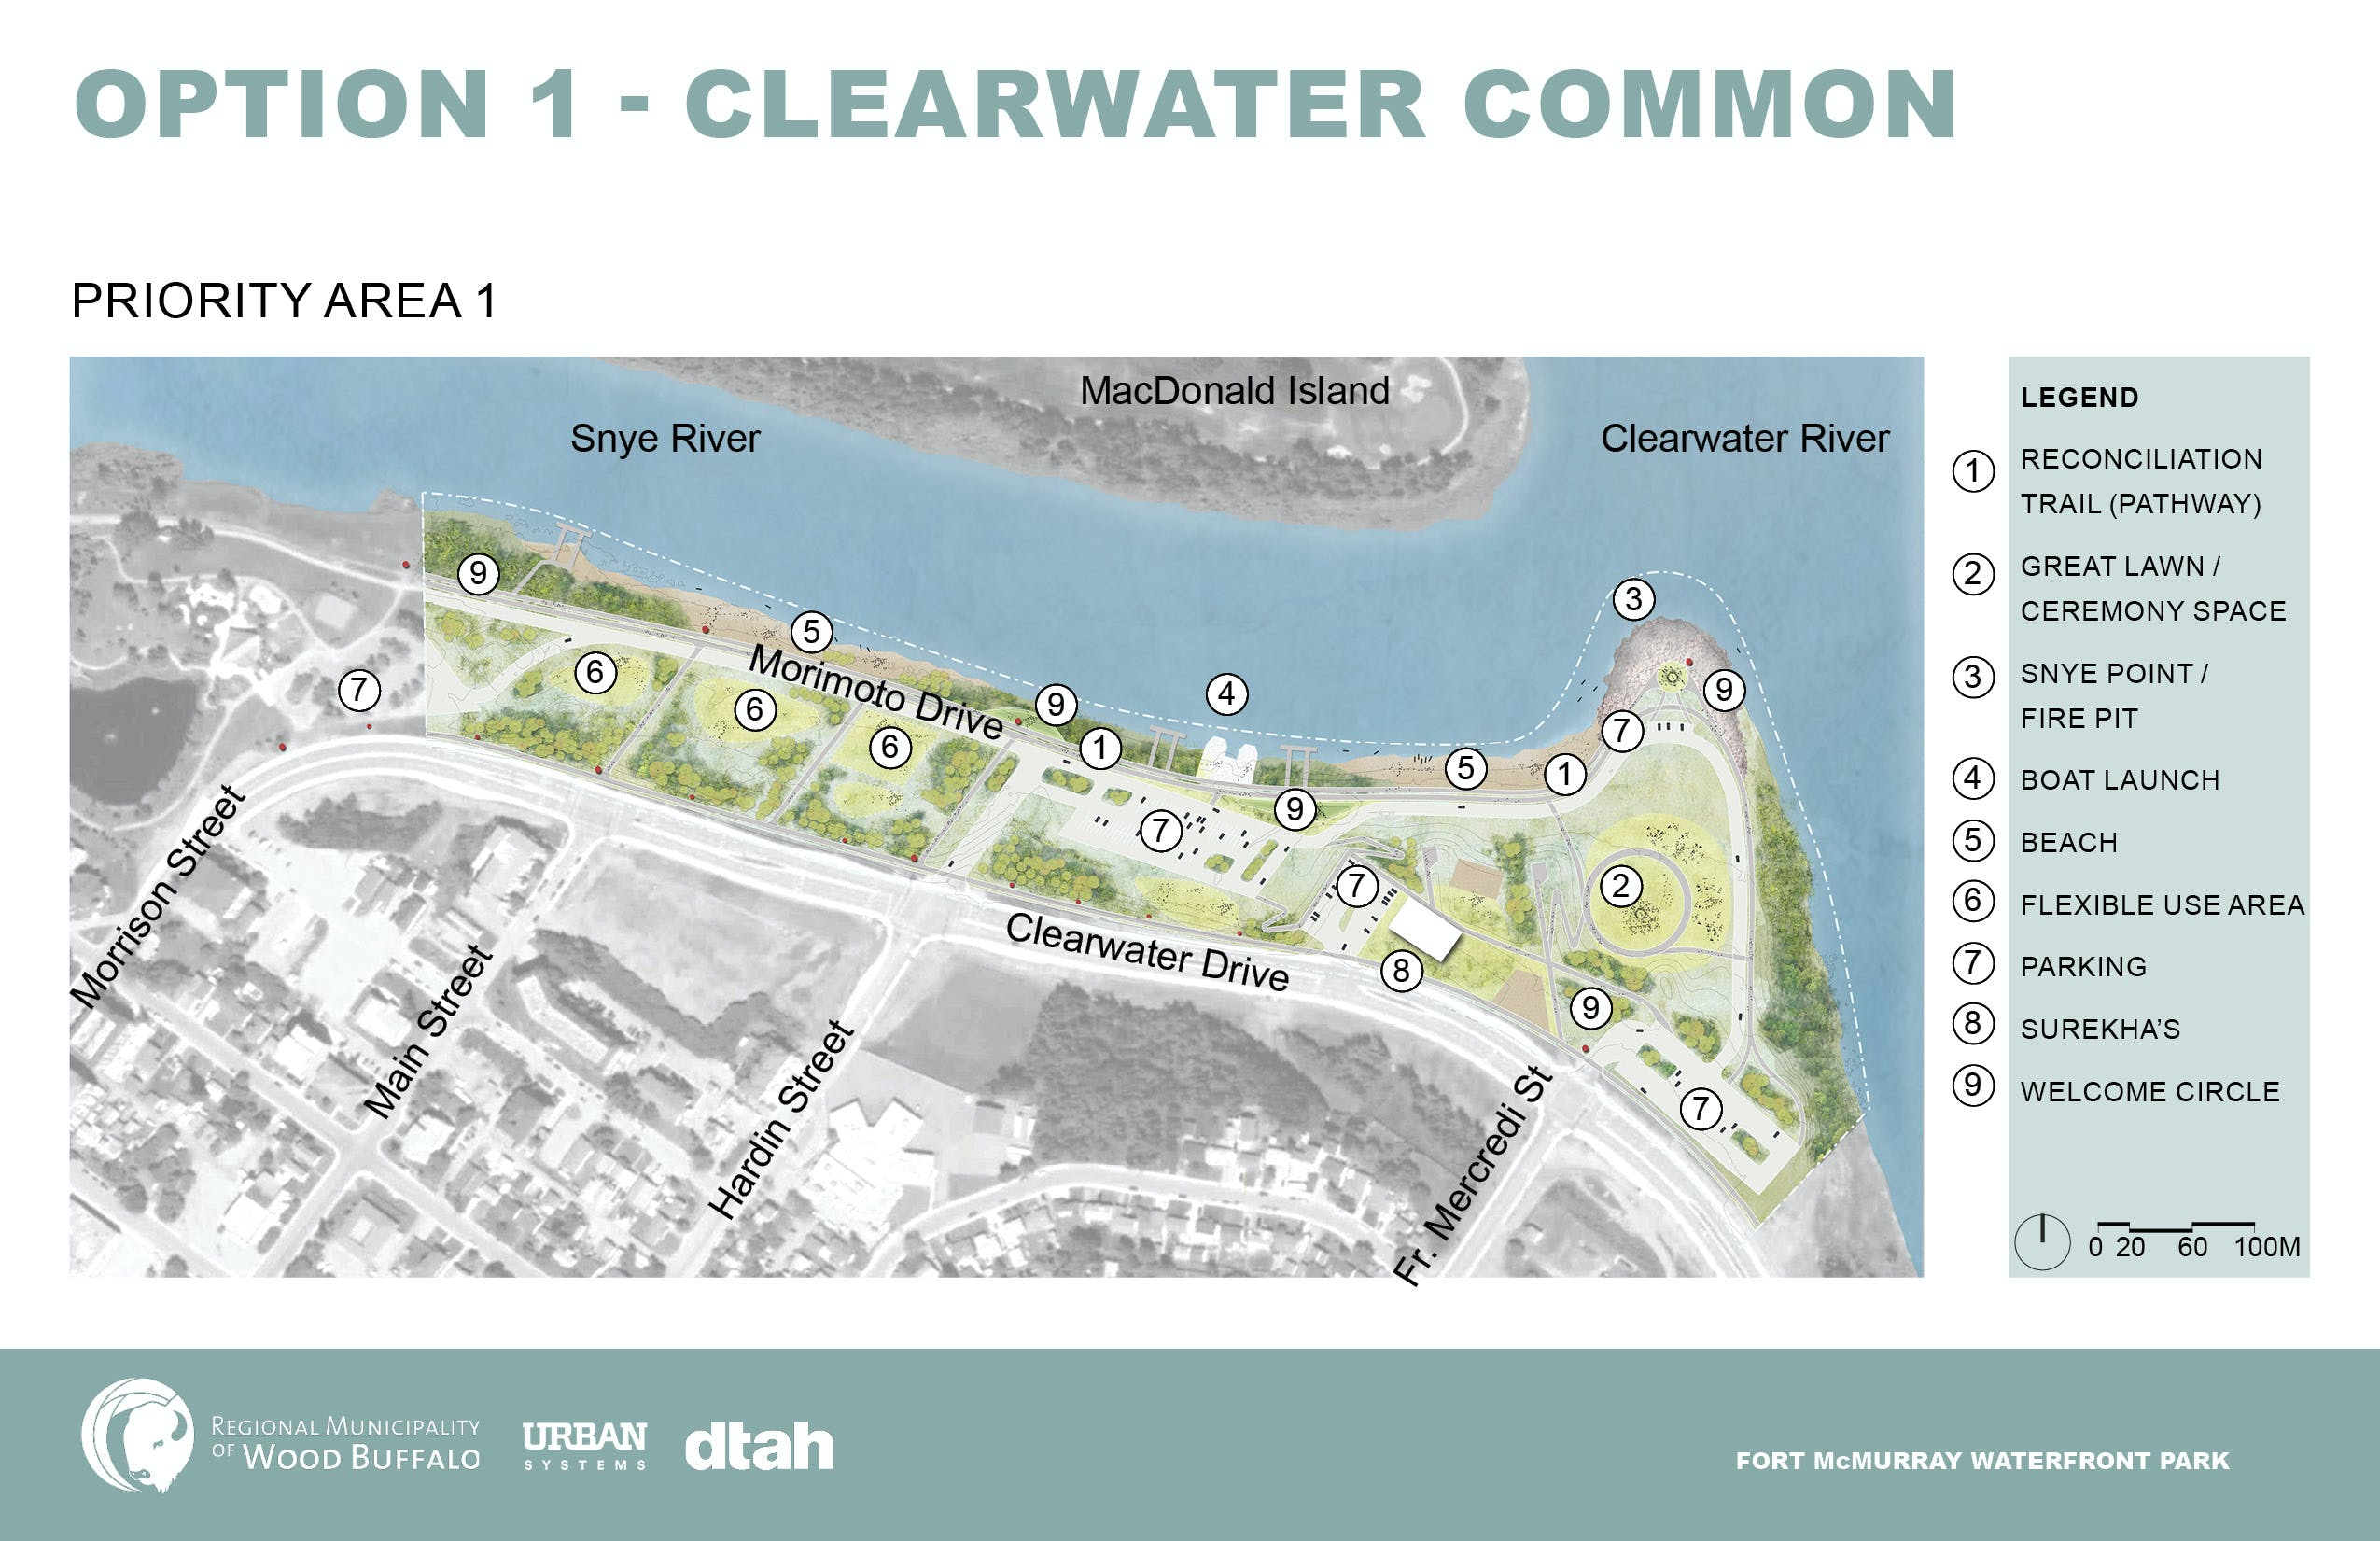 Option 1 - Clearwater Common